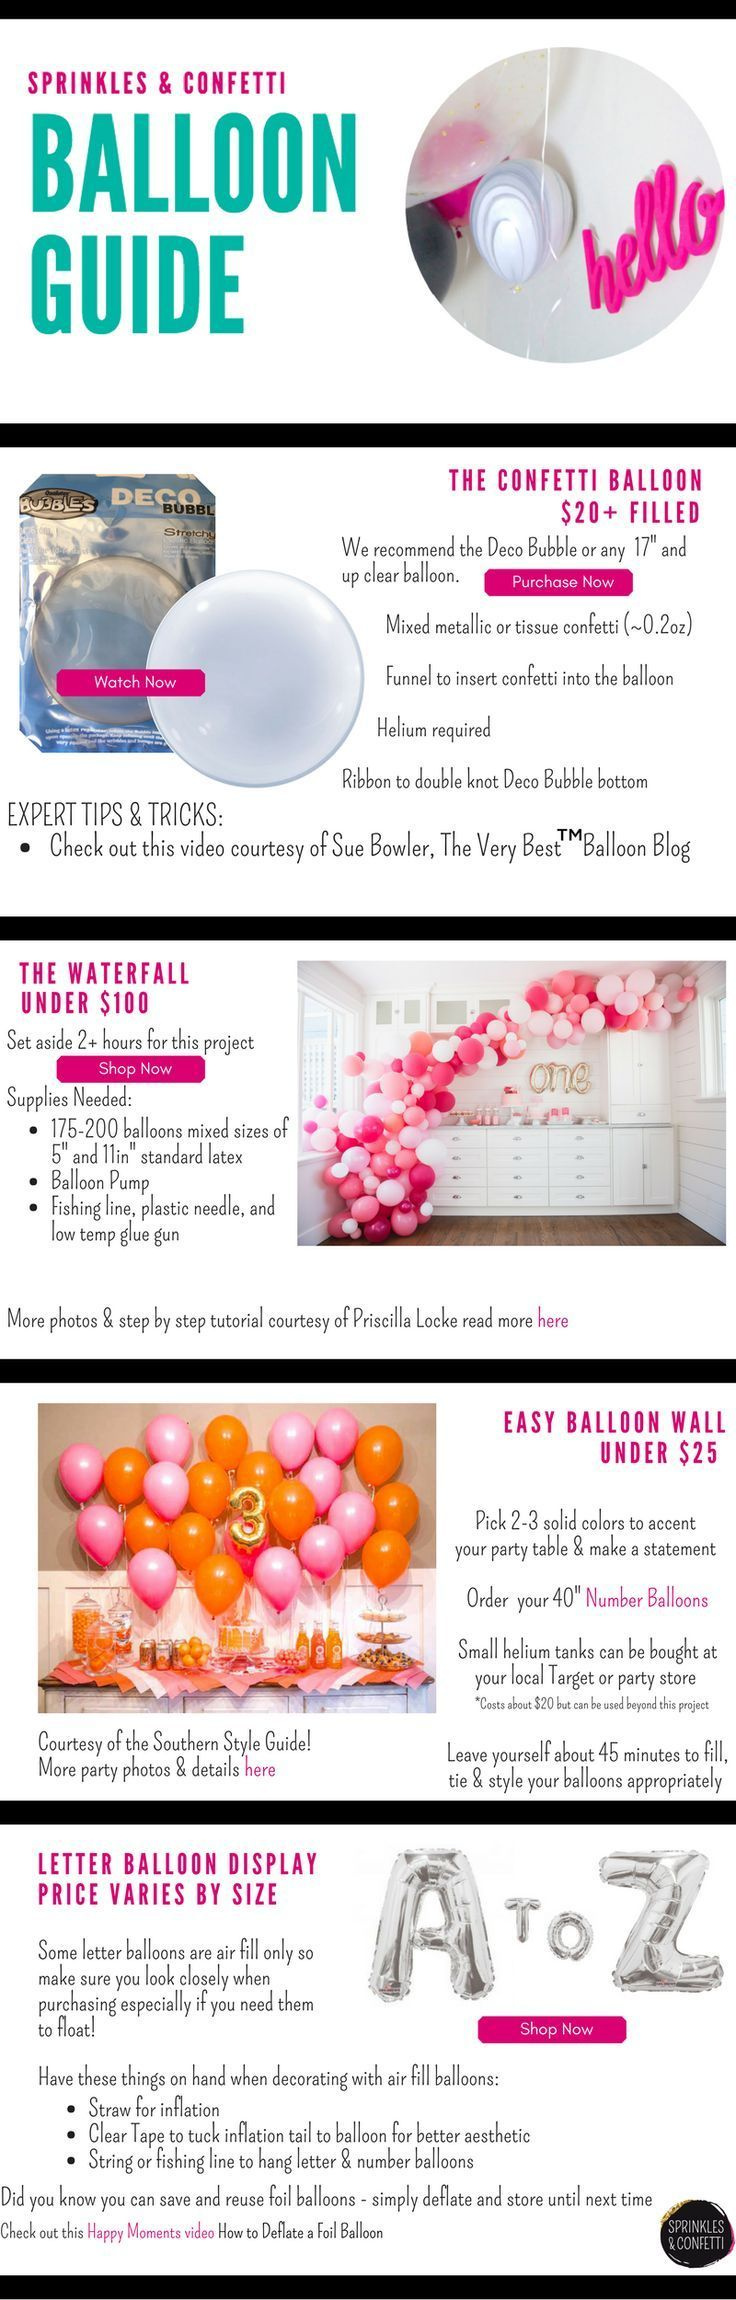 Add Style to your next Party with Balloons - -